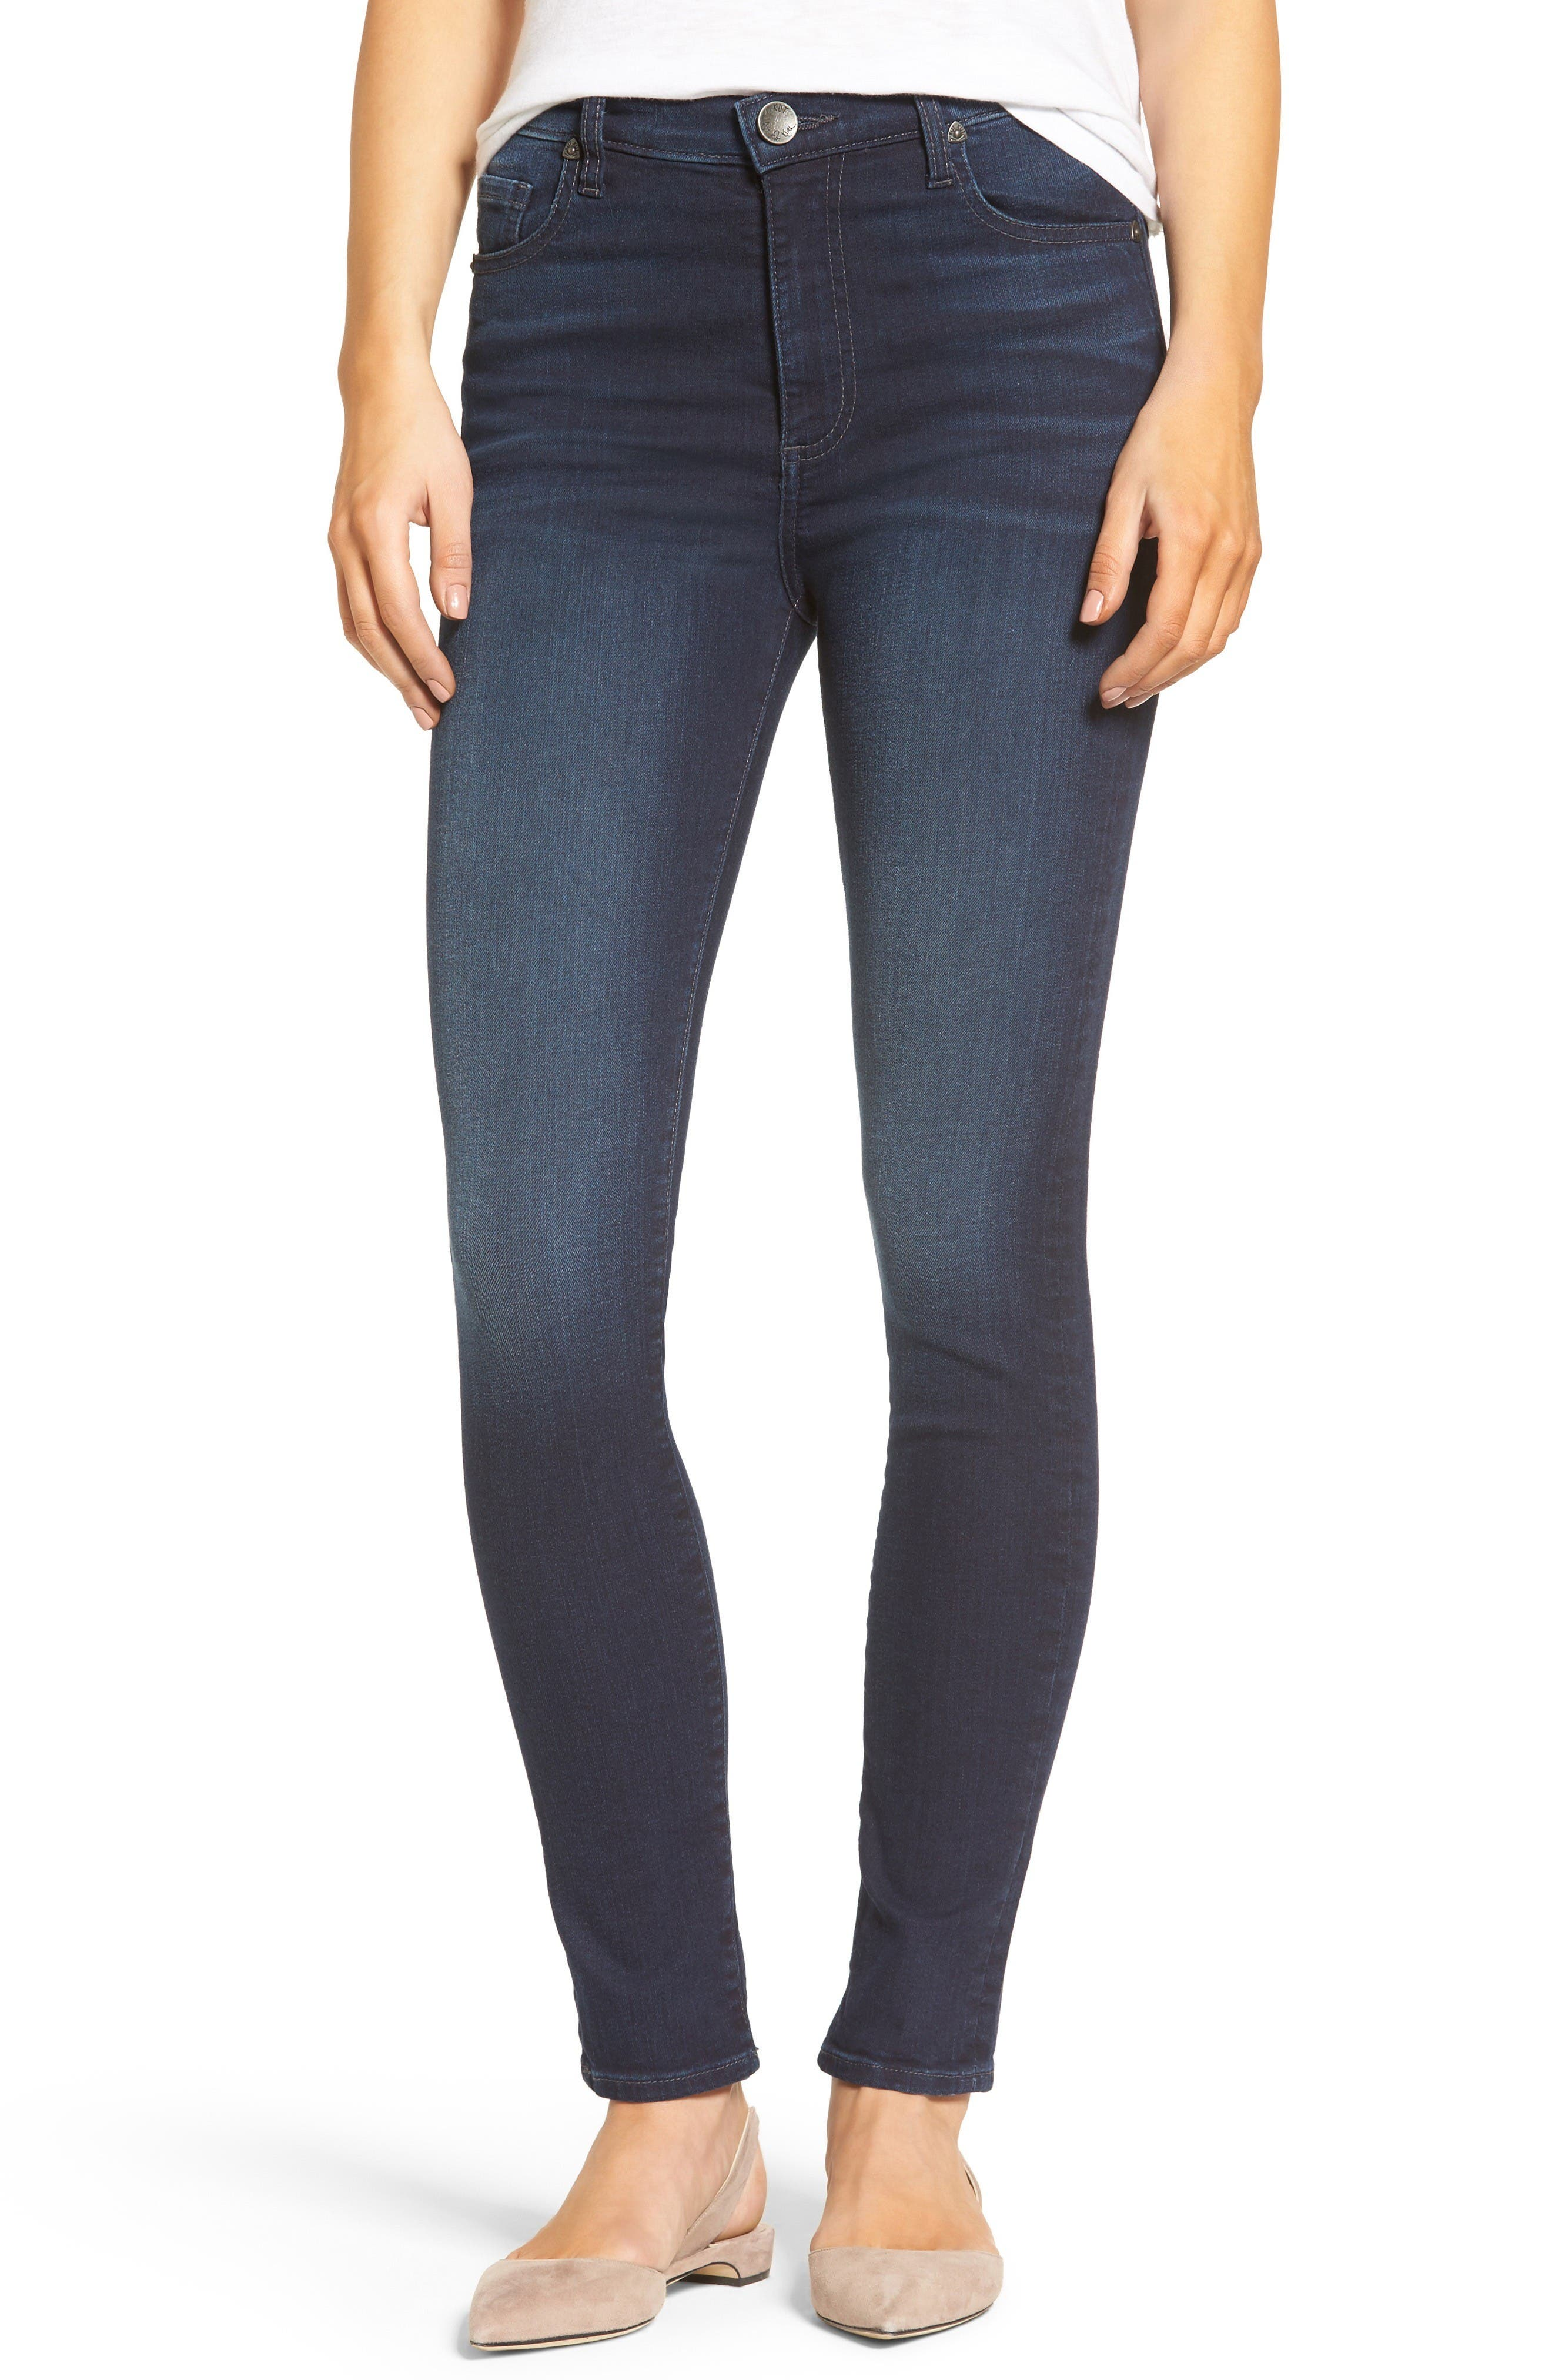 KUT from the Kloth Mia High Waist Skinny Jeans (Regular & Petite) (Pacable)